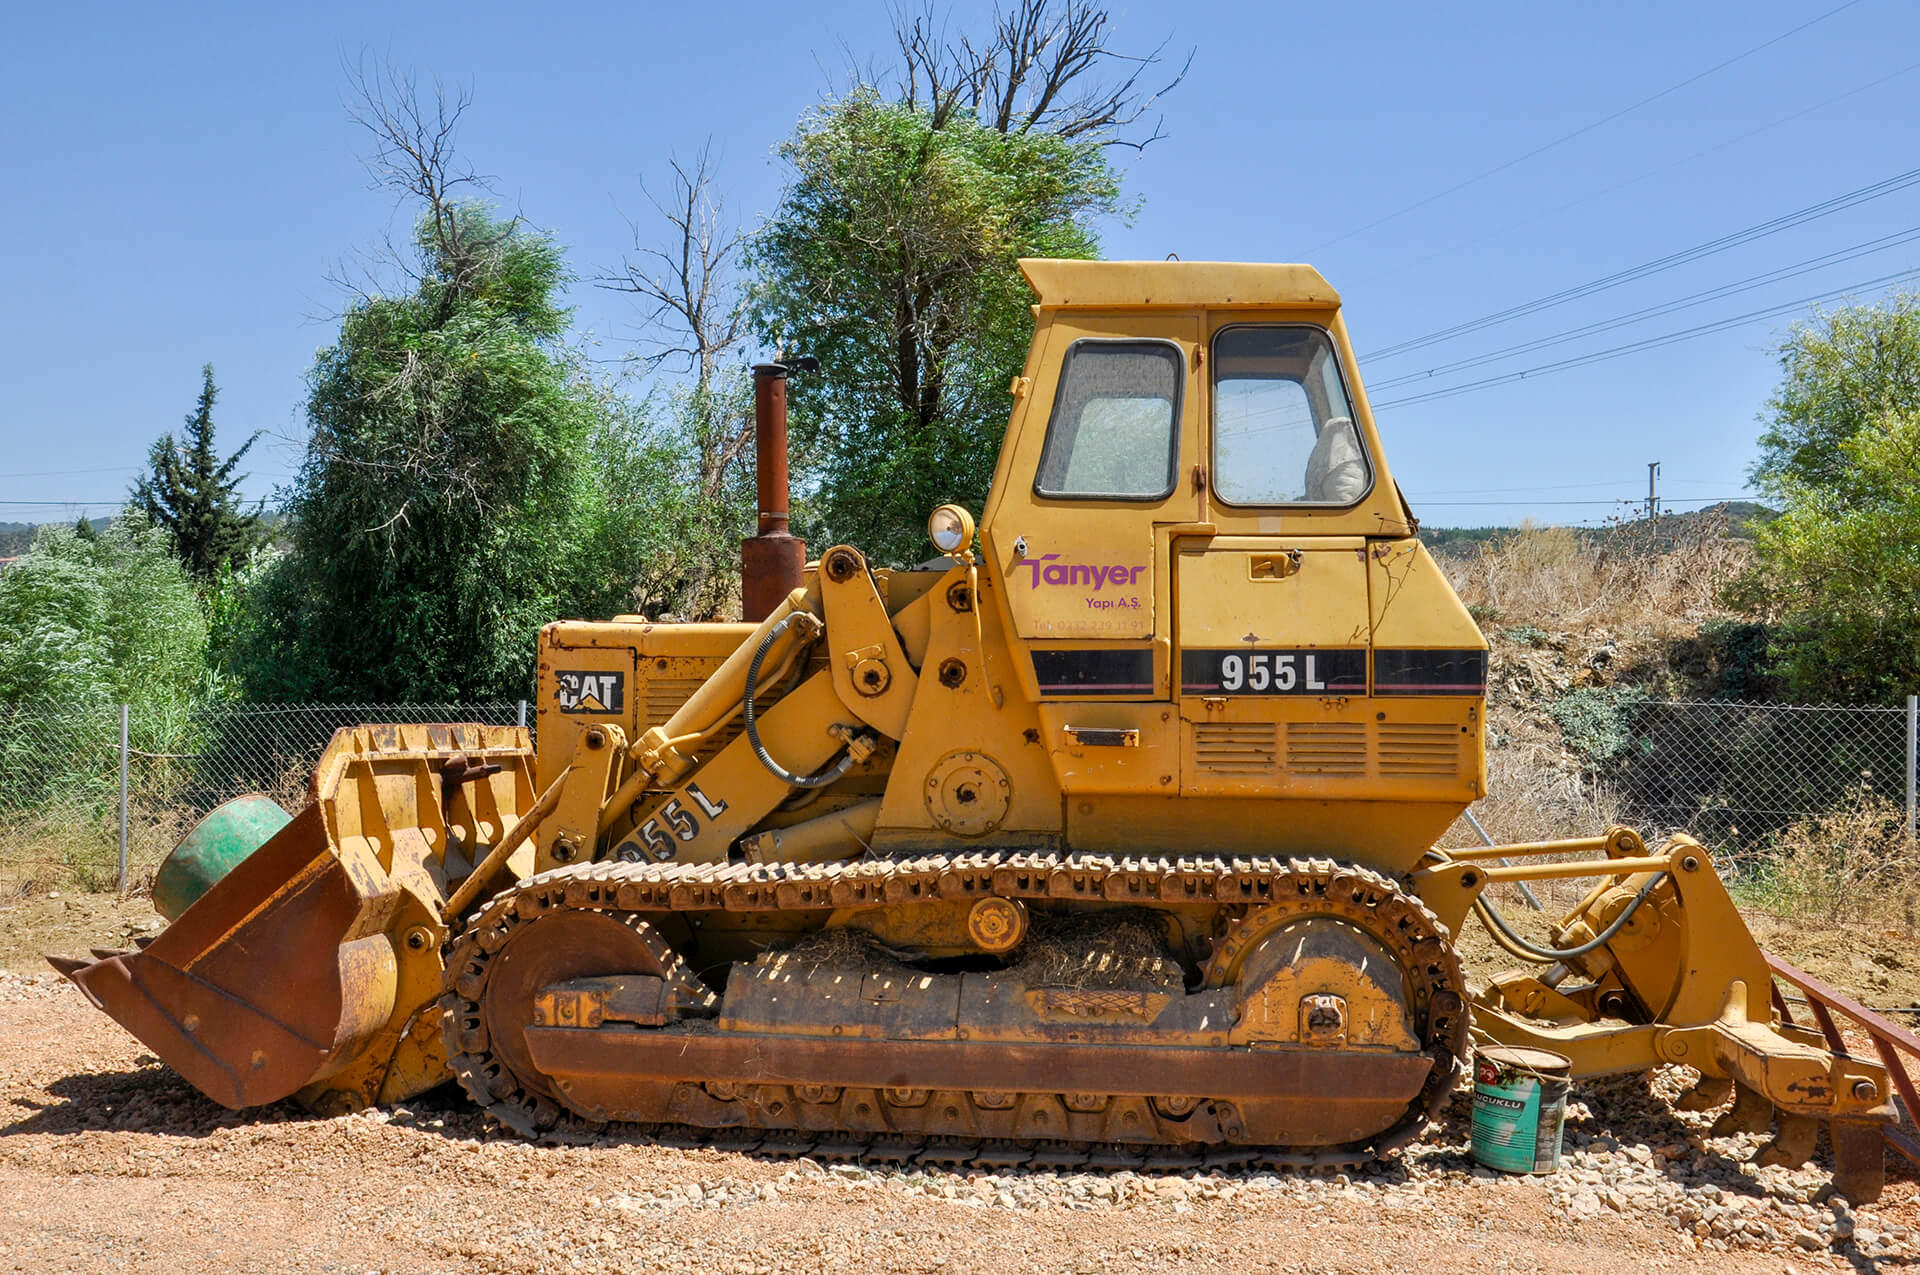 CAT 955 Paletli Dozer